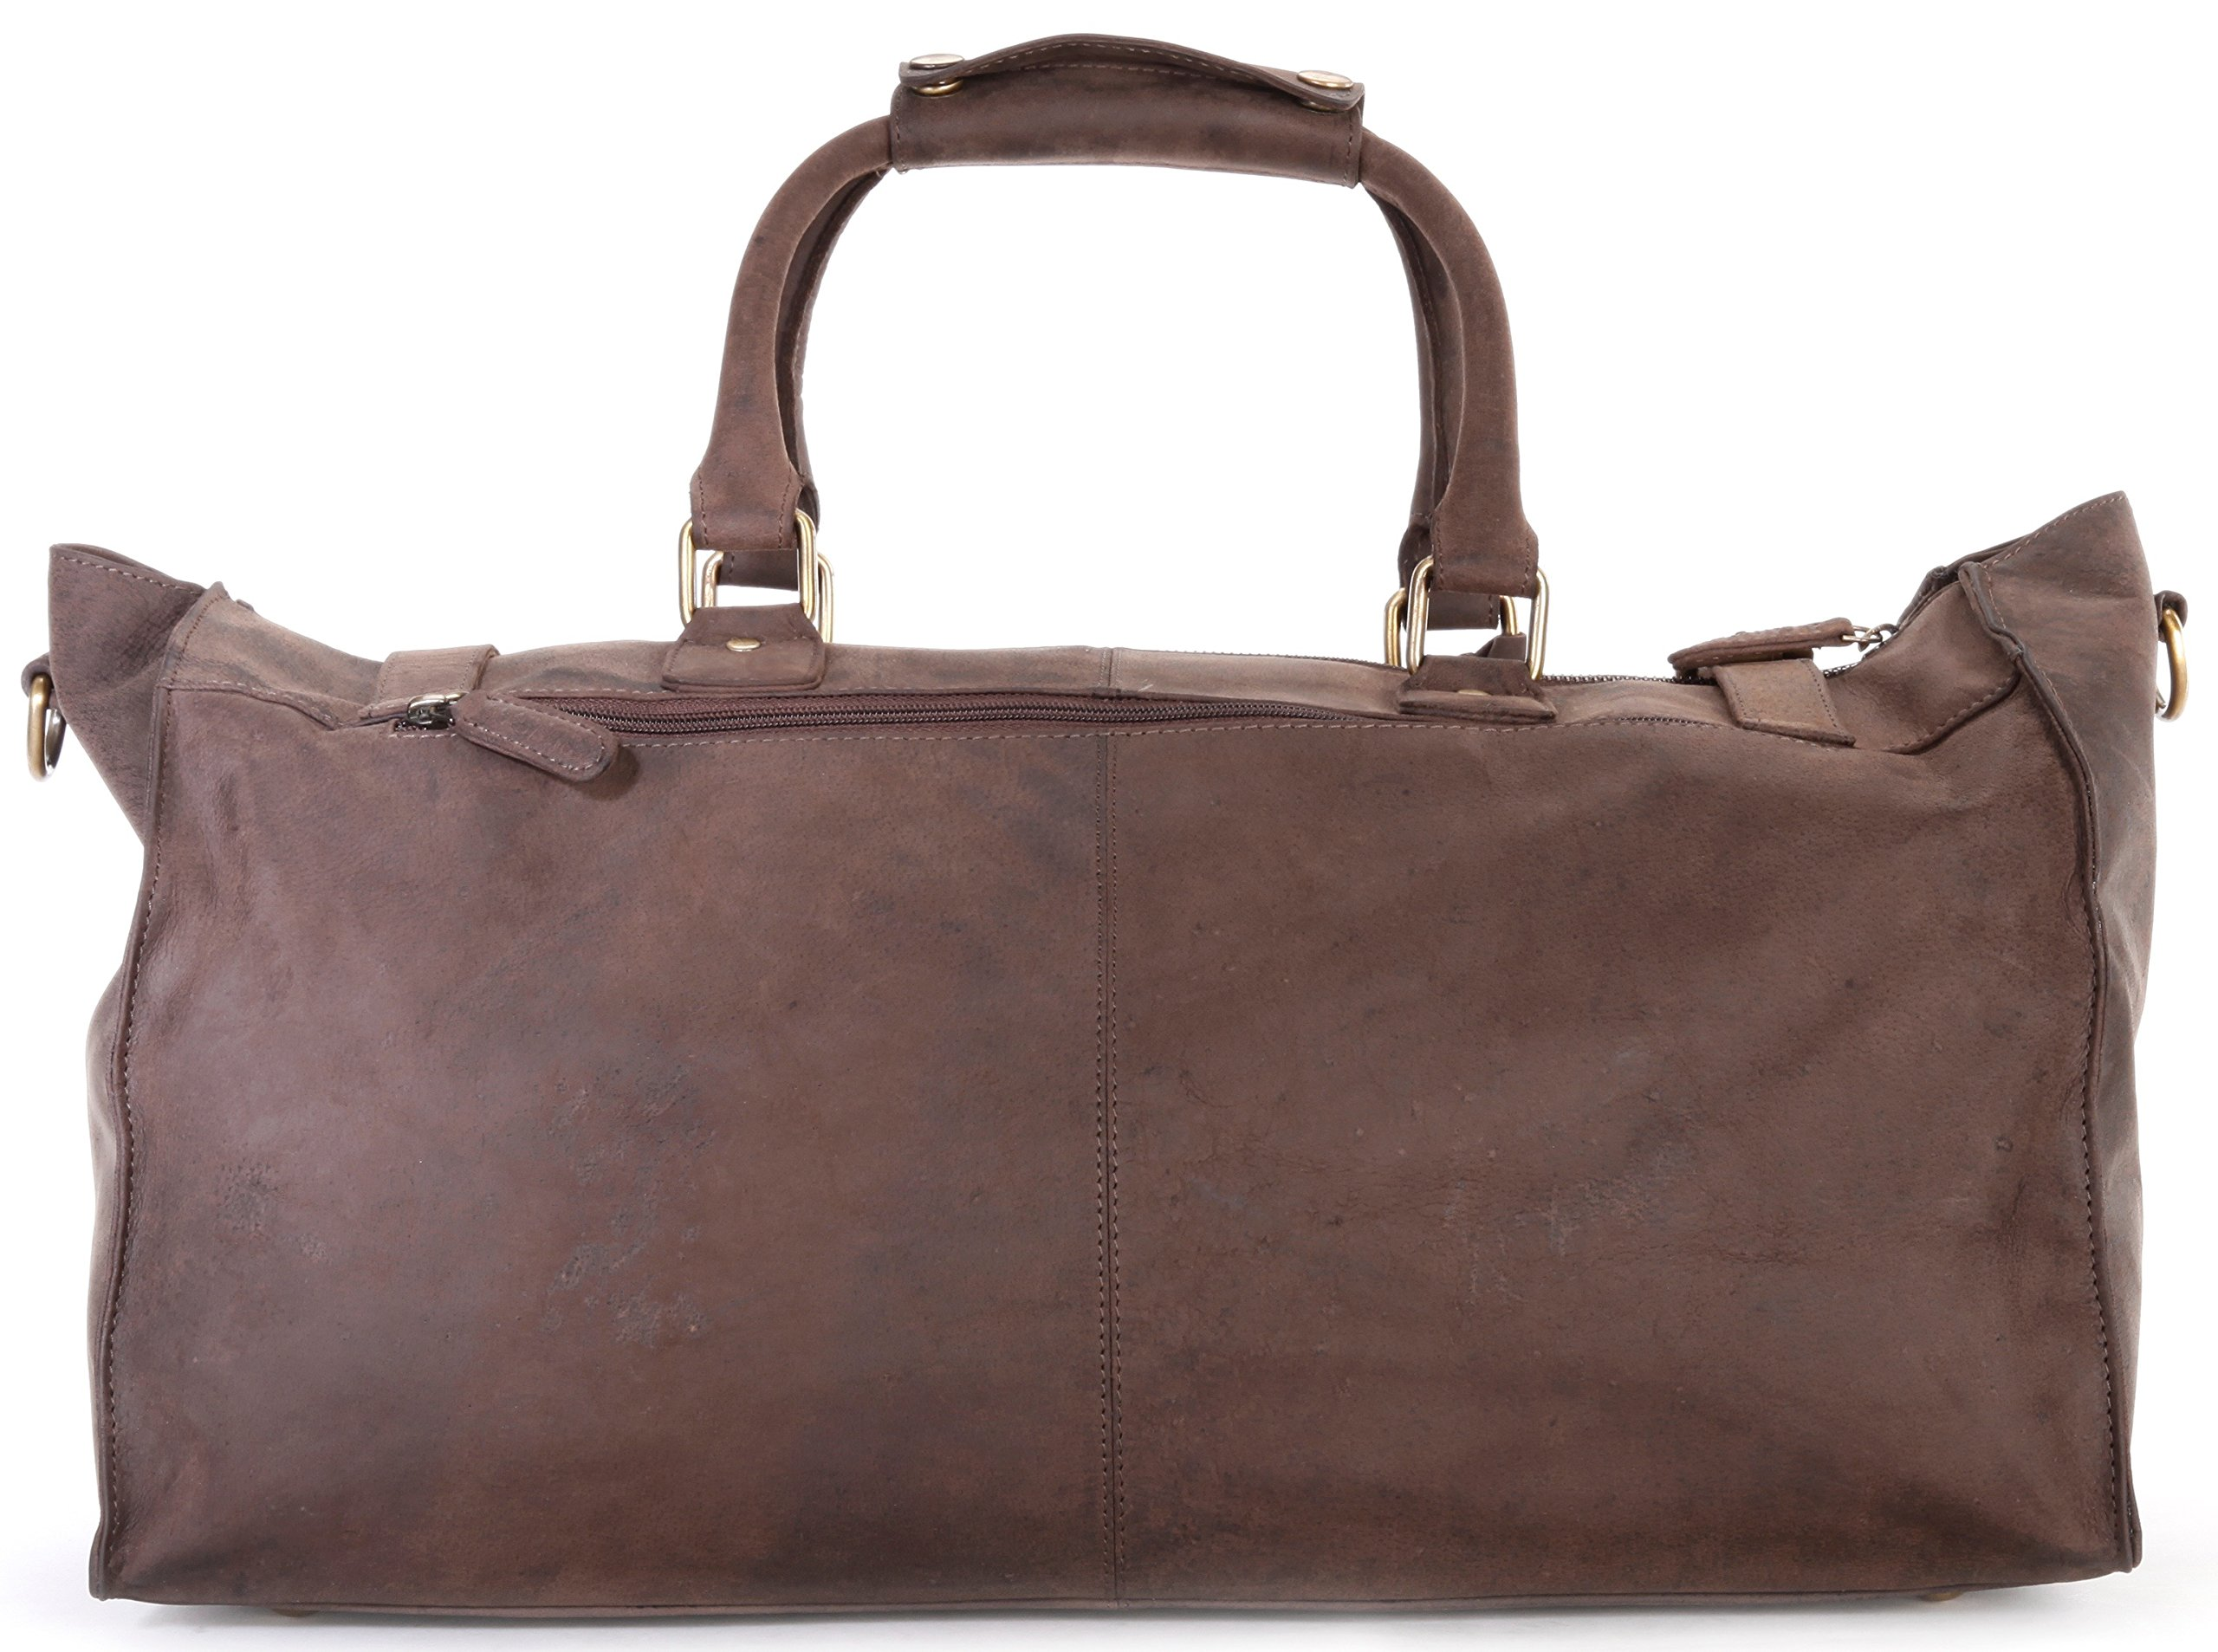 LEABAGS Durham genuine buffalo leather duffle bag in vintage style - Nutmeg by LEABAGS (Image #3)